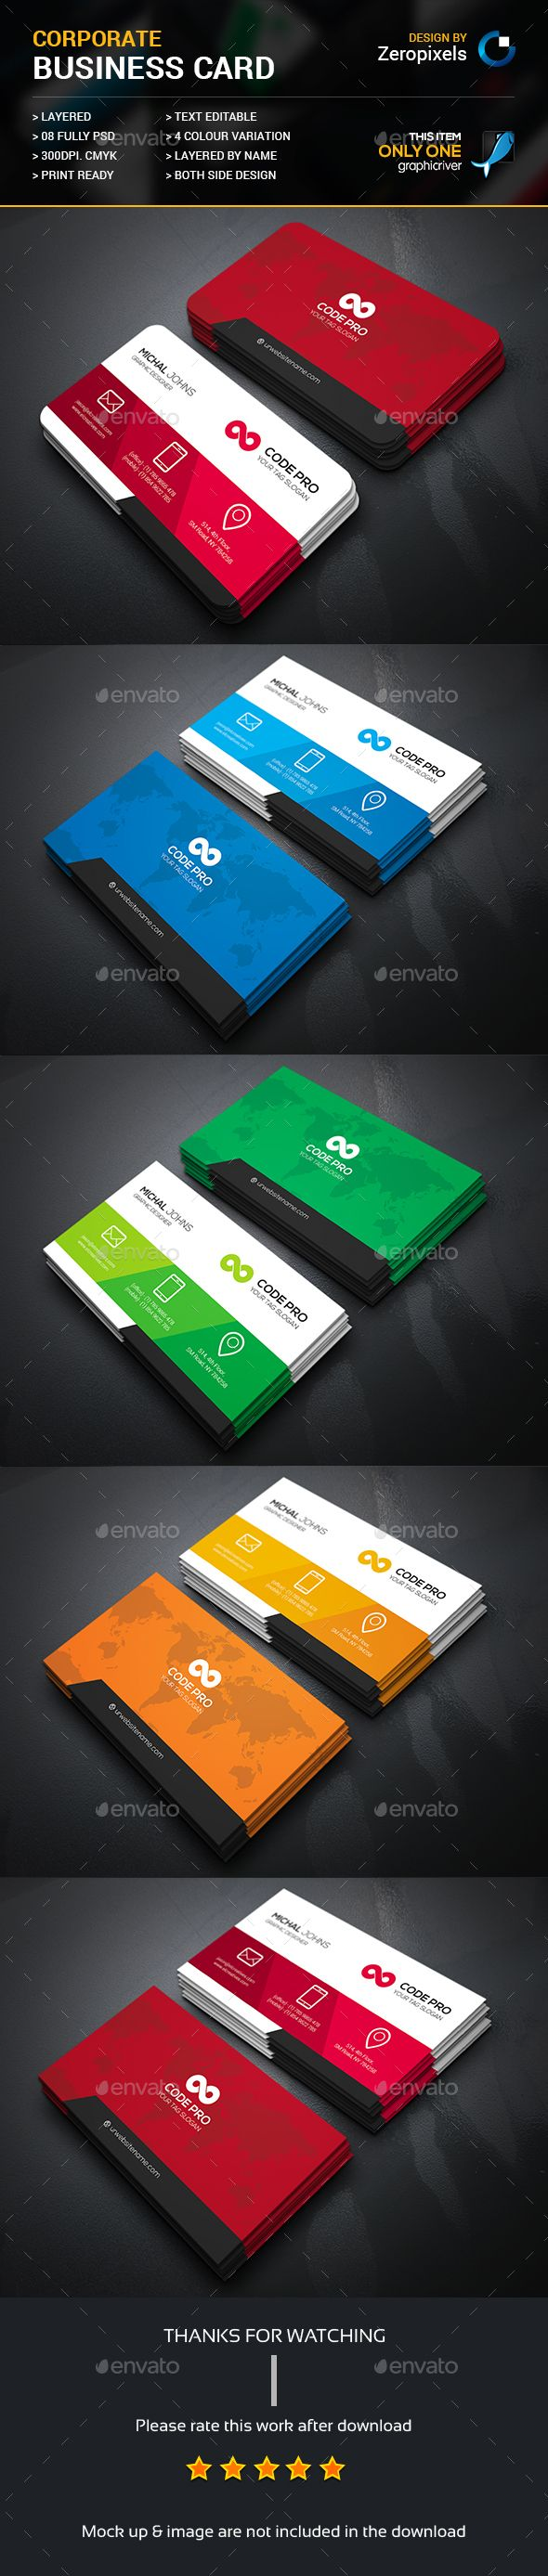 Creative Corporate Business Card Template PSD. Download here: http://graphicriver.net/item/creative-corporate-business-card/16458675?ref=ksioks